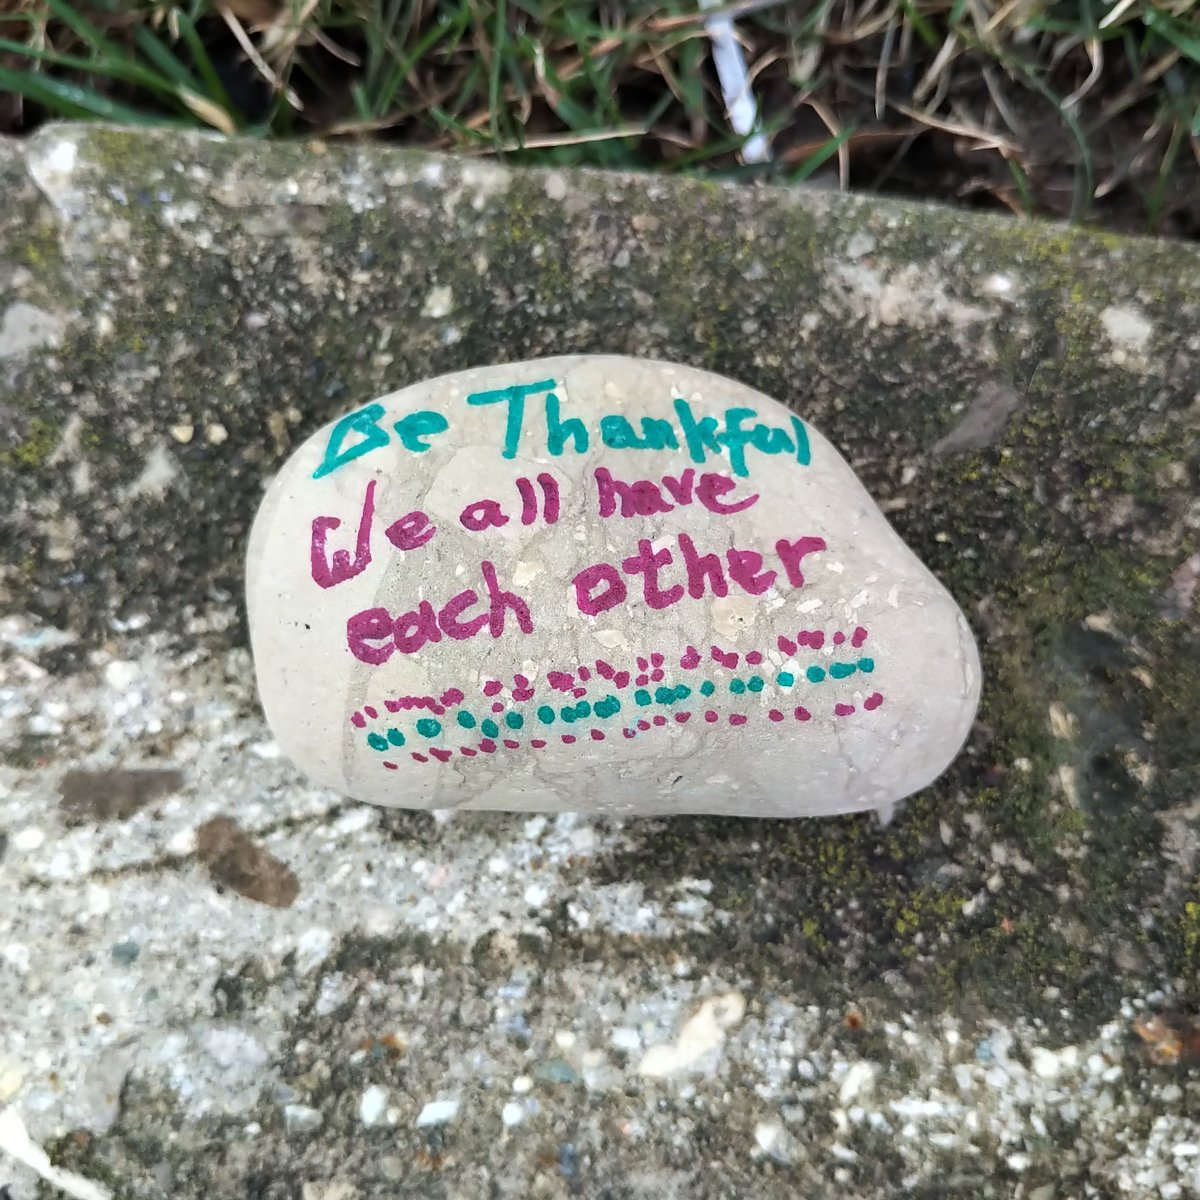 On the curb, at the end of many driveways, I spotted these stones with messages of thanks and hope!!  Keep the spirits high!  #welldone  #wrawesome #kwawesome pic.twitter.com/cw2b0Flc4D